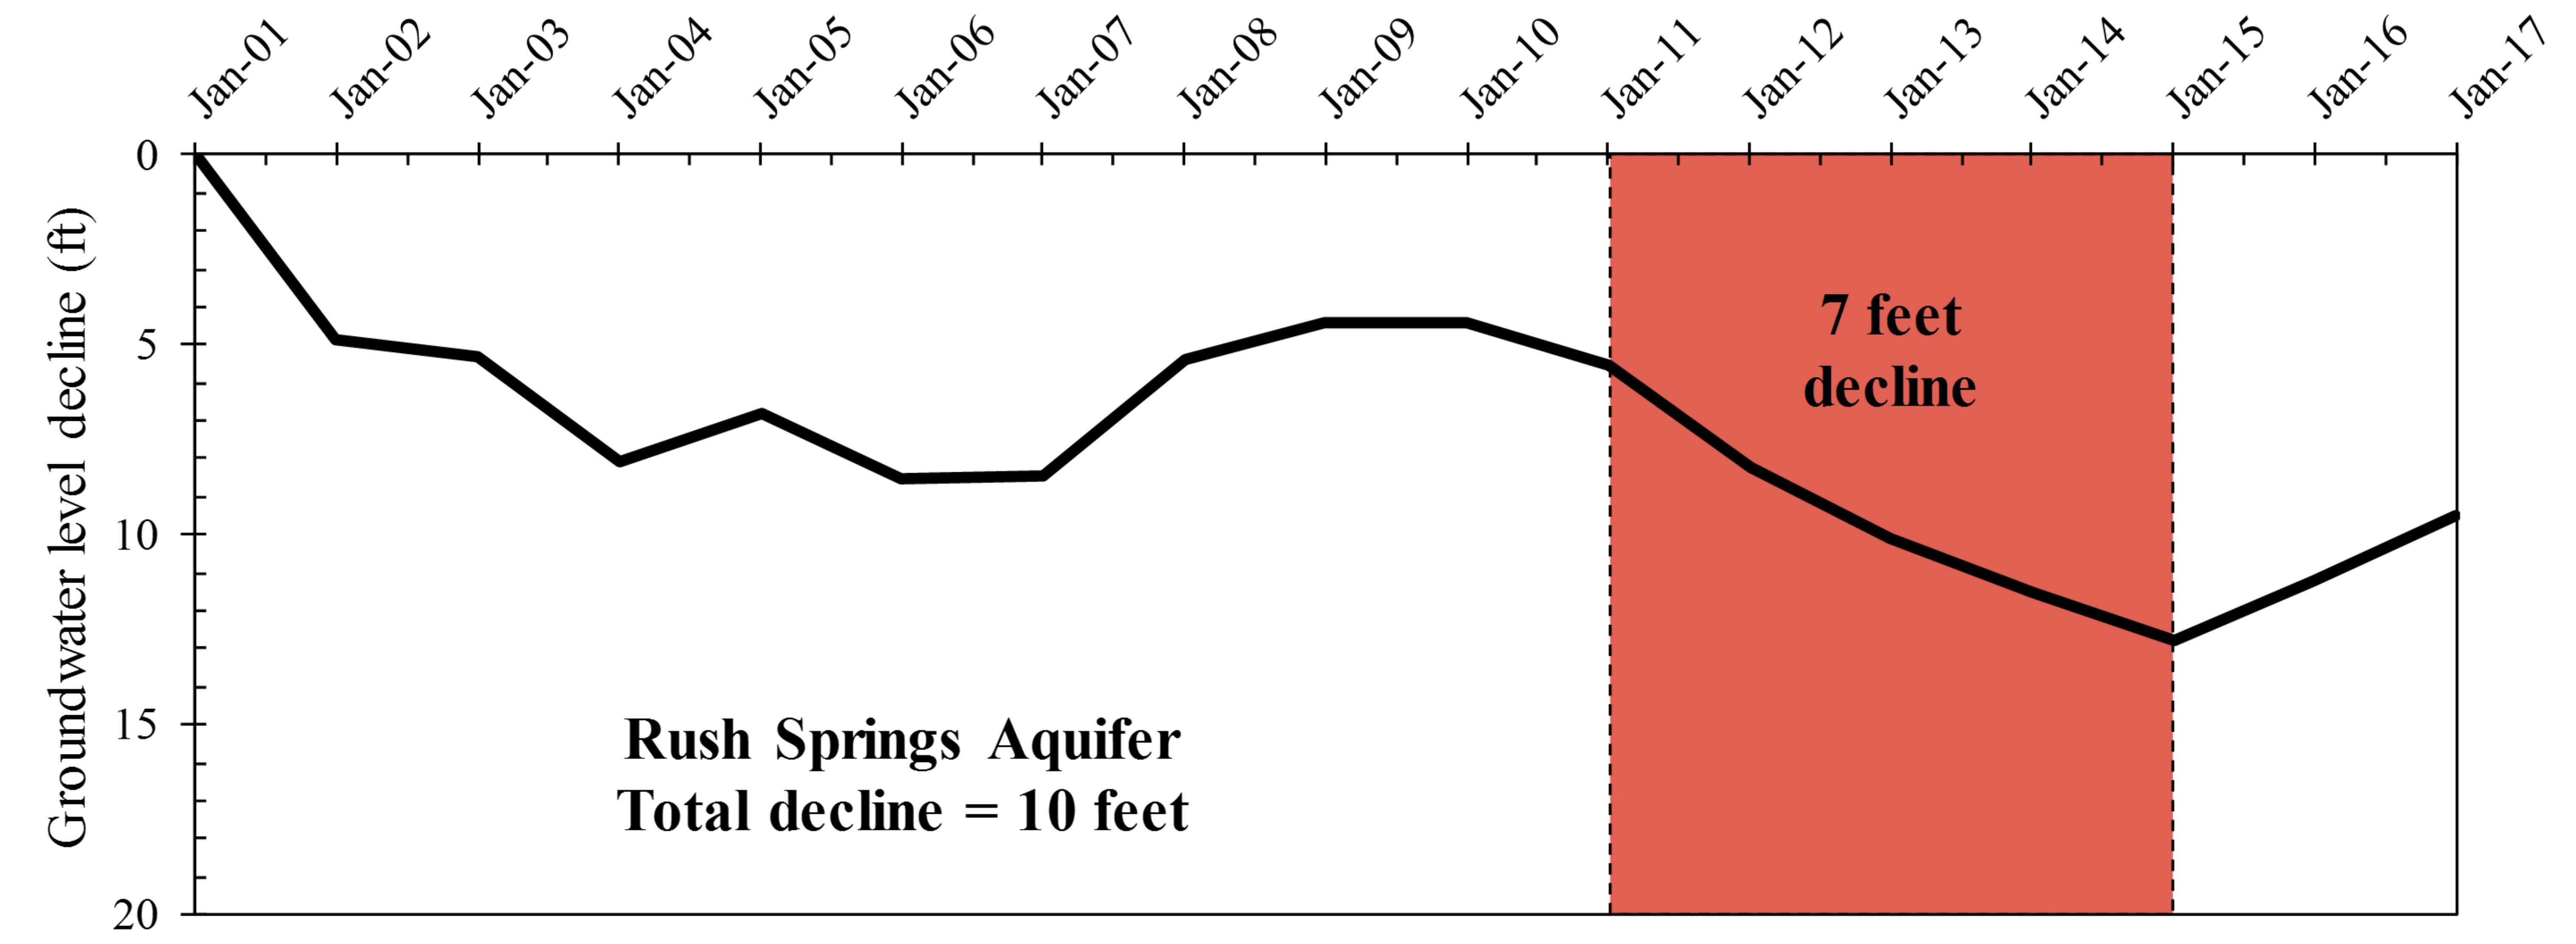 Groundwater level declines in the Rush Springs aquifer.